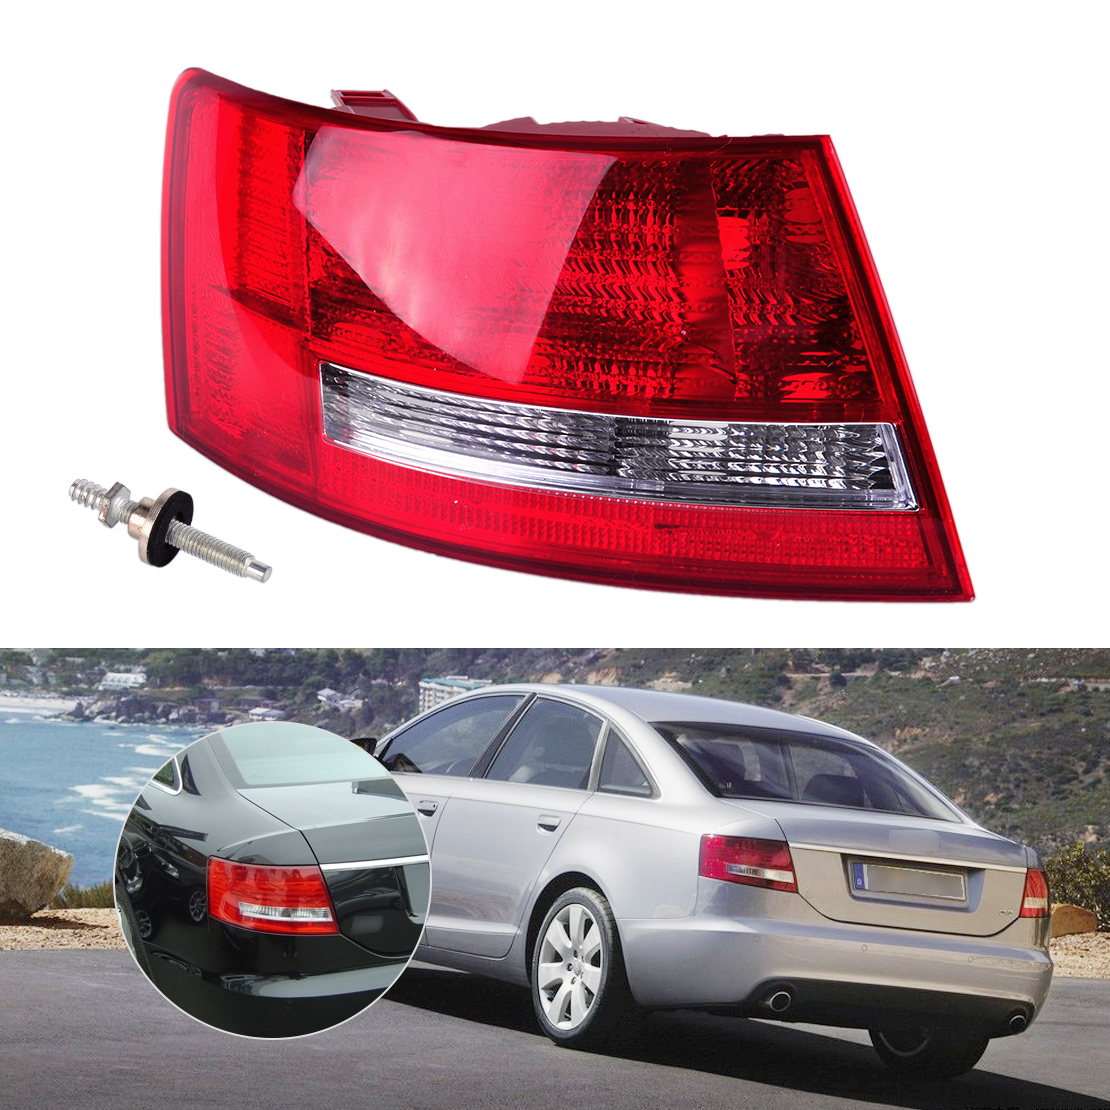 DWCX Rear Tail Left Light Taillight Assembly Lamp Housing without Bulb 4F5 945 095 L for Audi A6 /A6 Quattro Sedan 2005 2006 -08 taillight dongfeng for peugeot 408 2013 taillight rear light tail lamp assembly tail lights